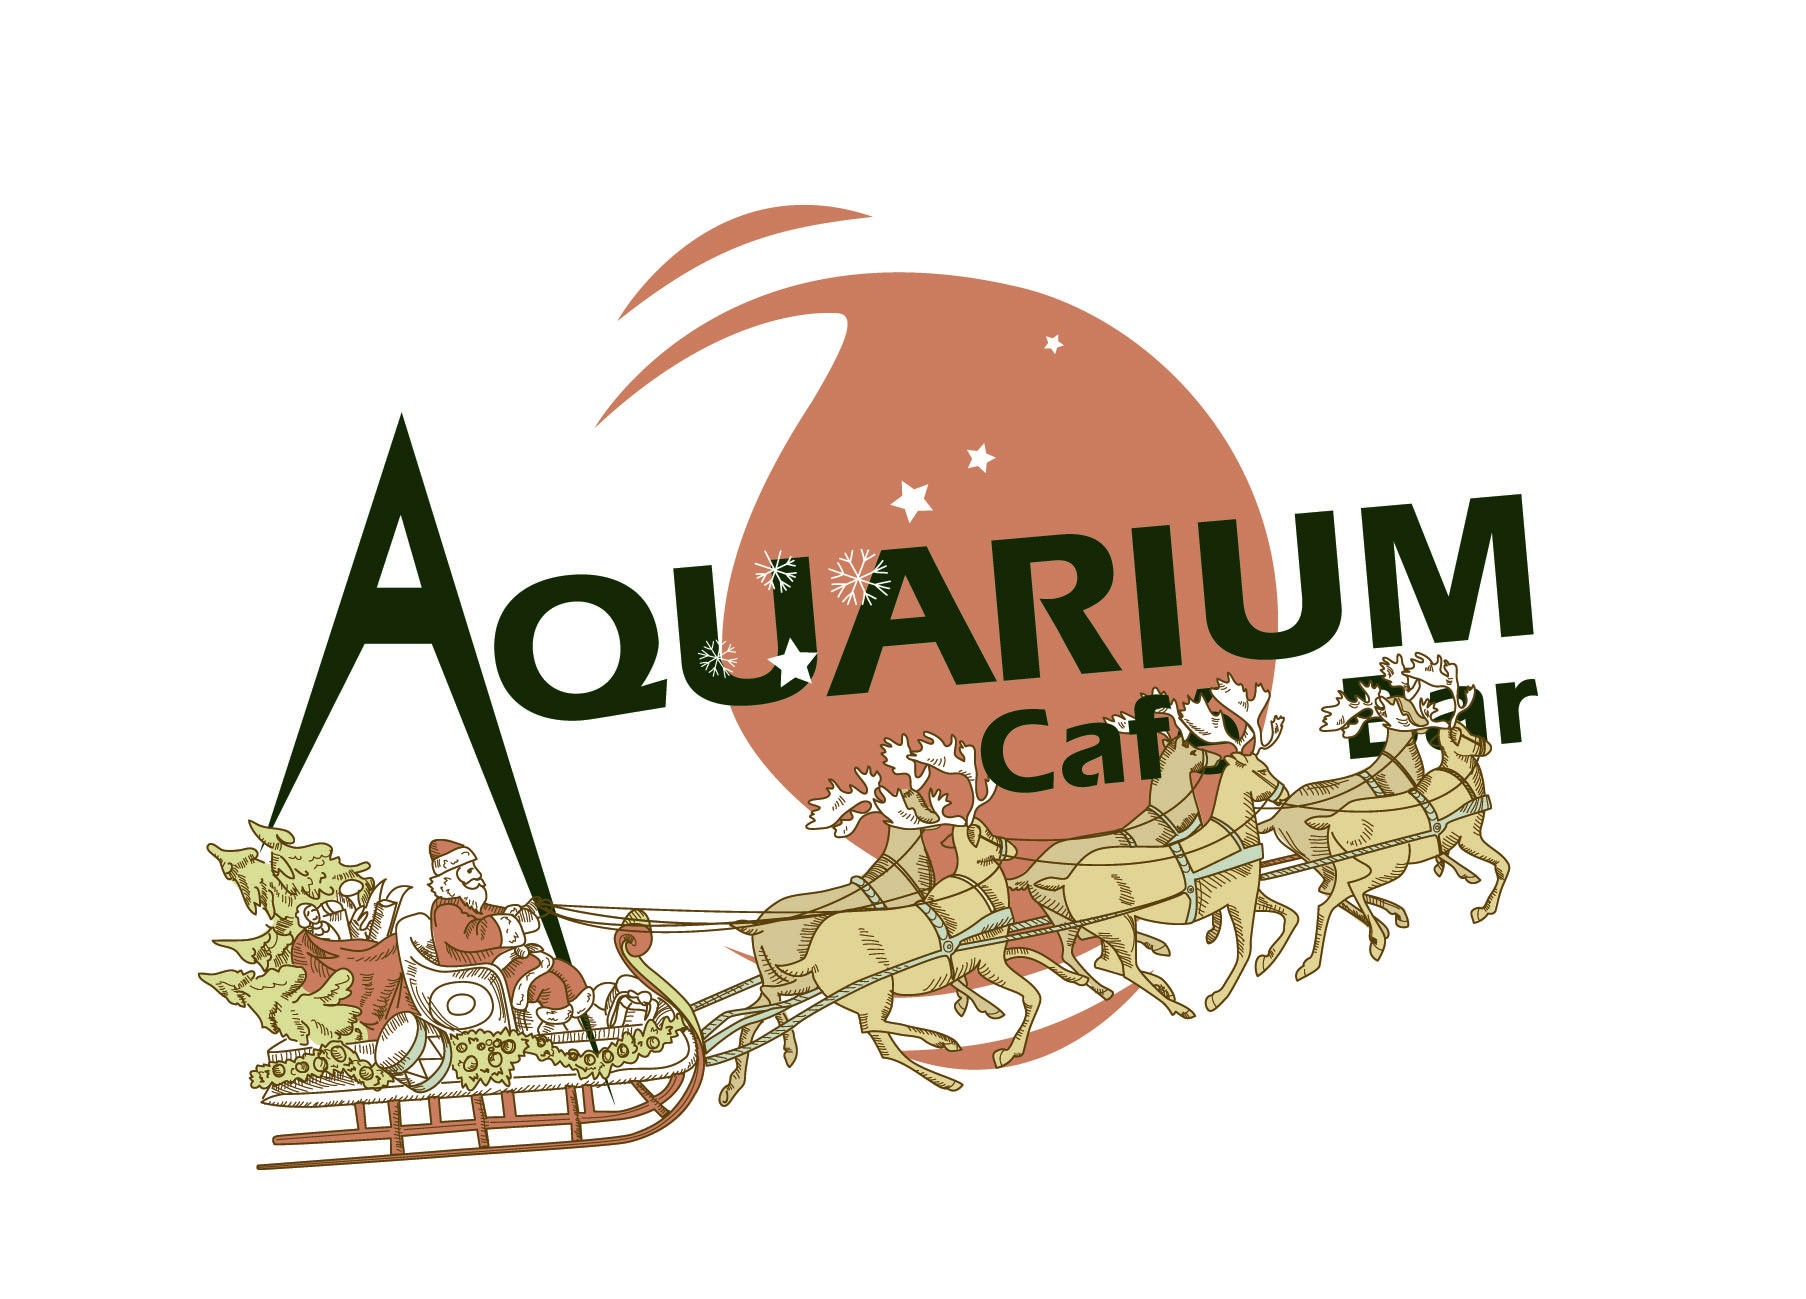 Aquarium Café Bar